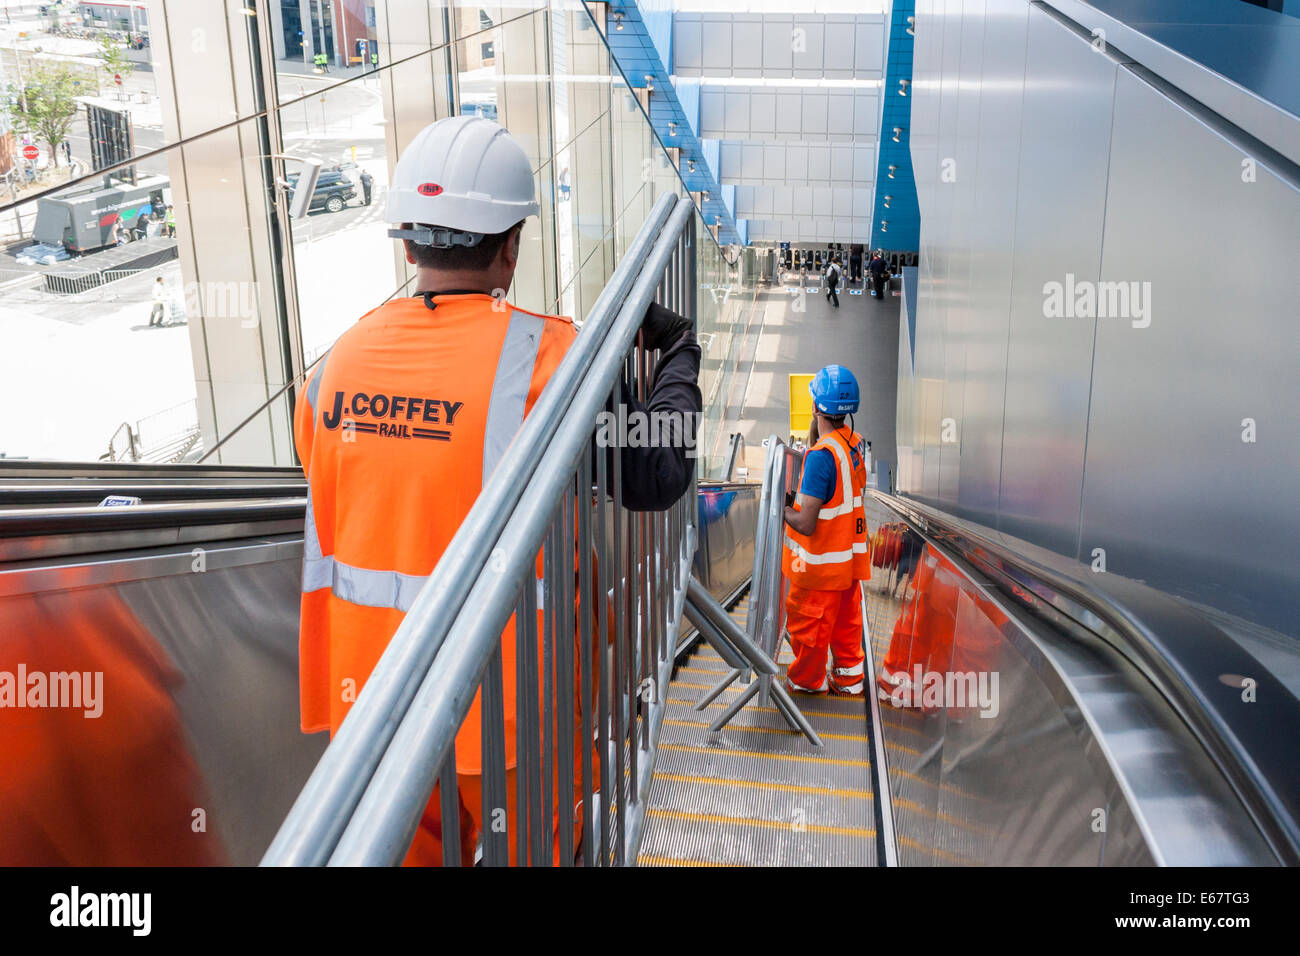 Workmen removing safety barriers down a public escalator after a